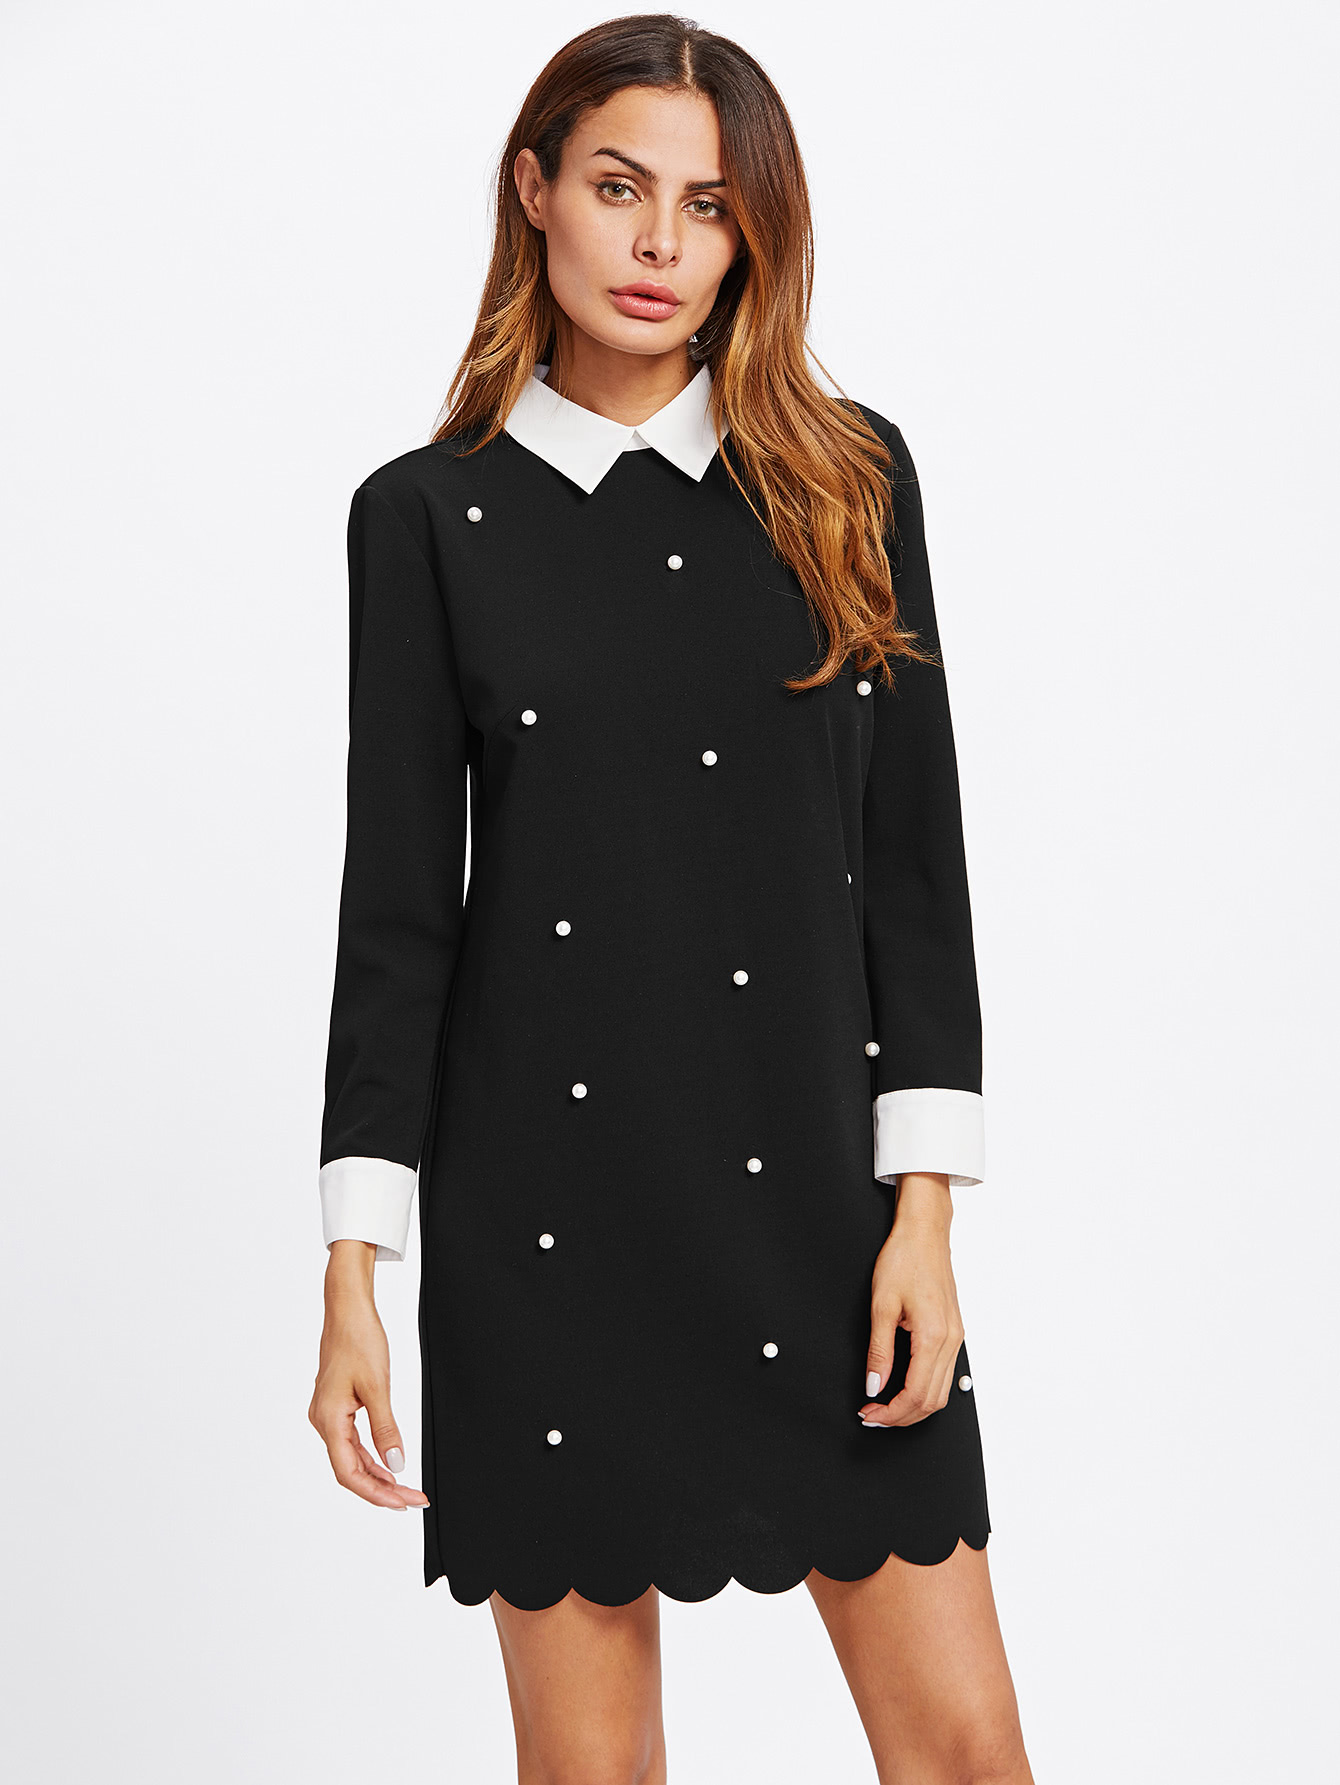 Pearl Beading Contrast Trim Scalloped Dress contrast collar & cuff pearl beading dress